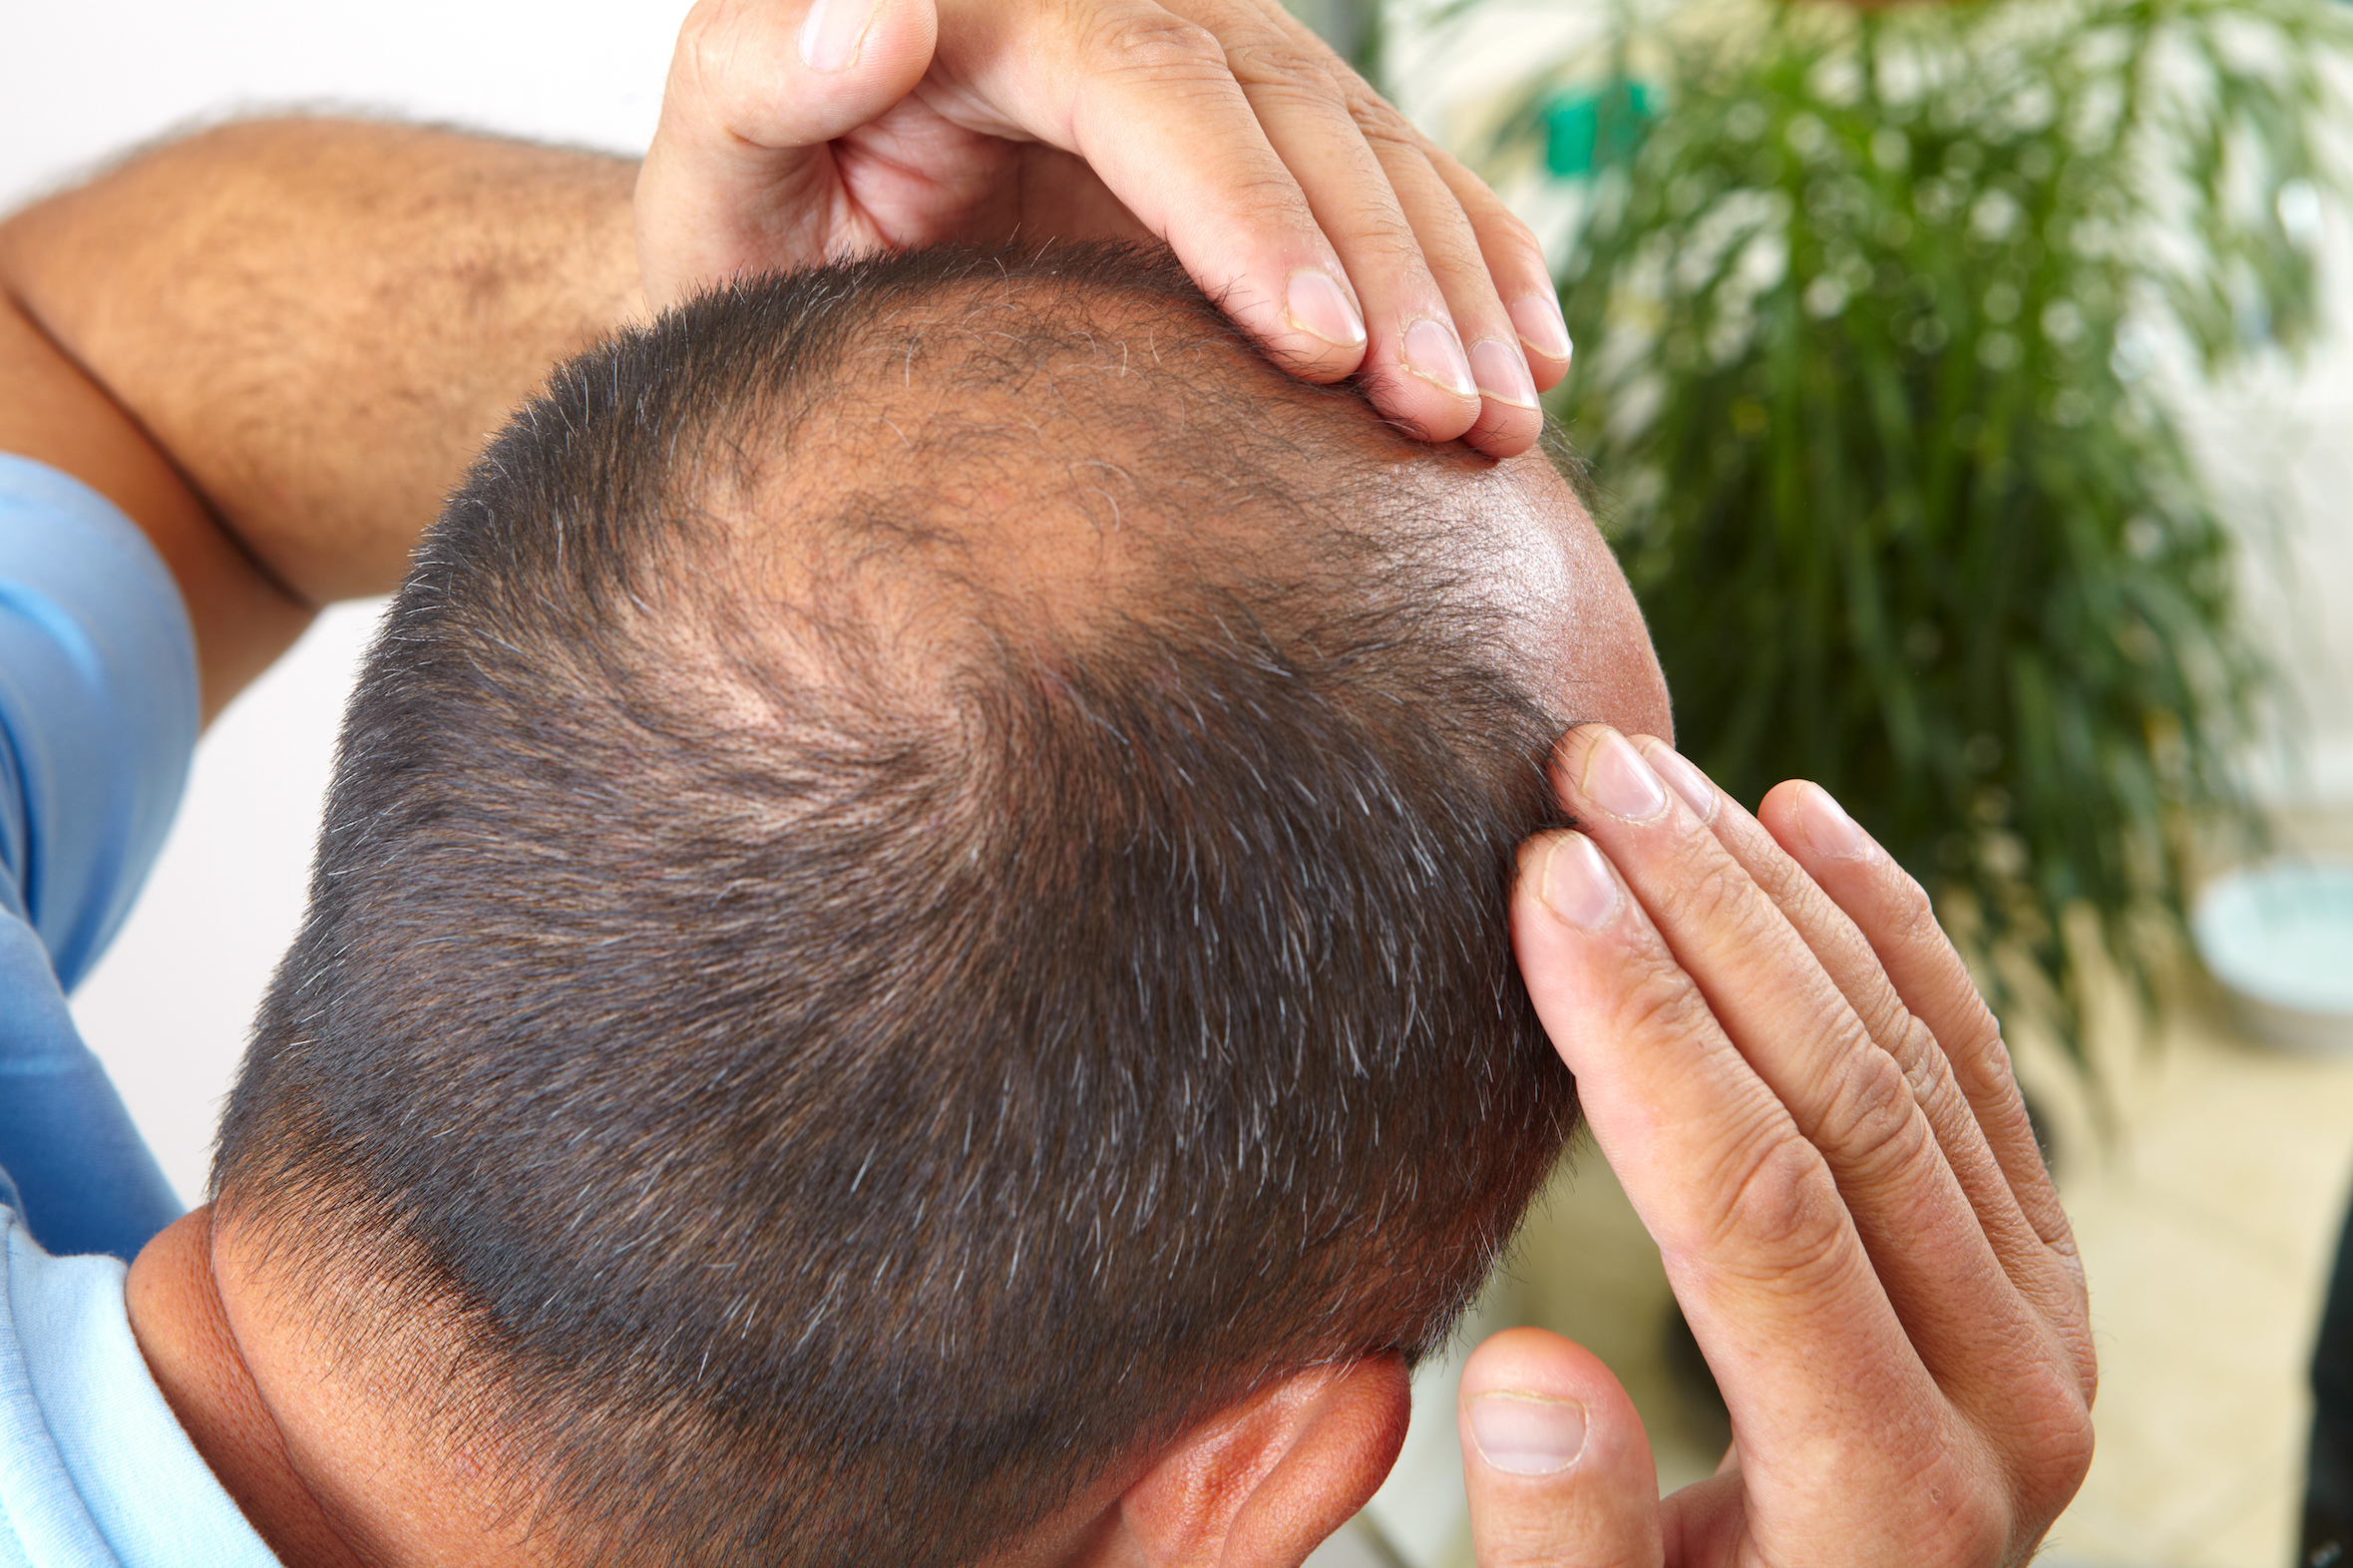 A new study has found that regulatory T cells also directly trigger stem cells in the skin to promote healthy hair growth.